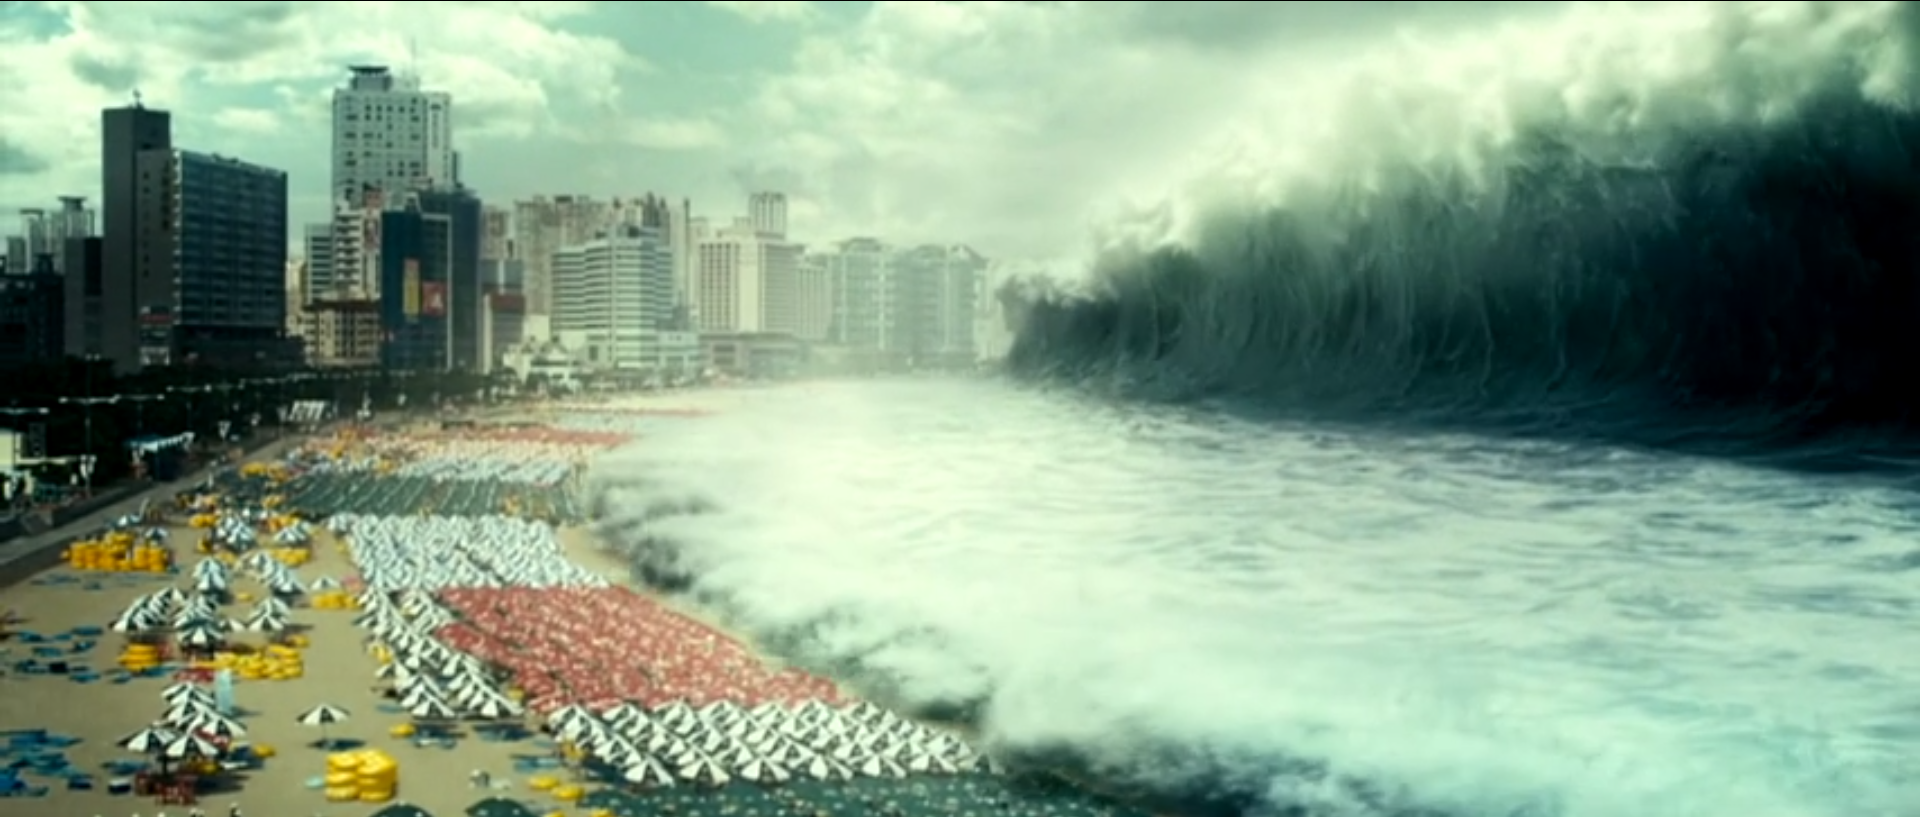 Haeundae/Tidal Wave is a monster movie where the wave is the